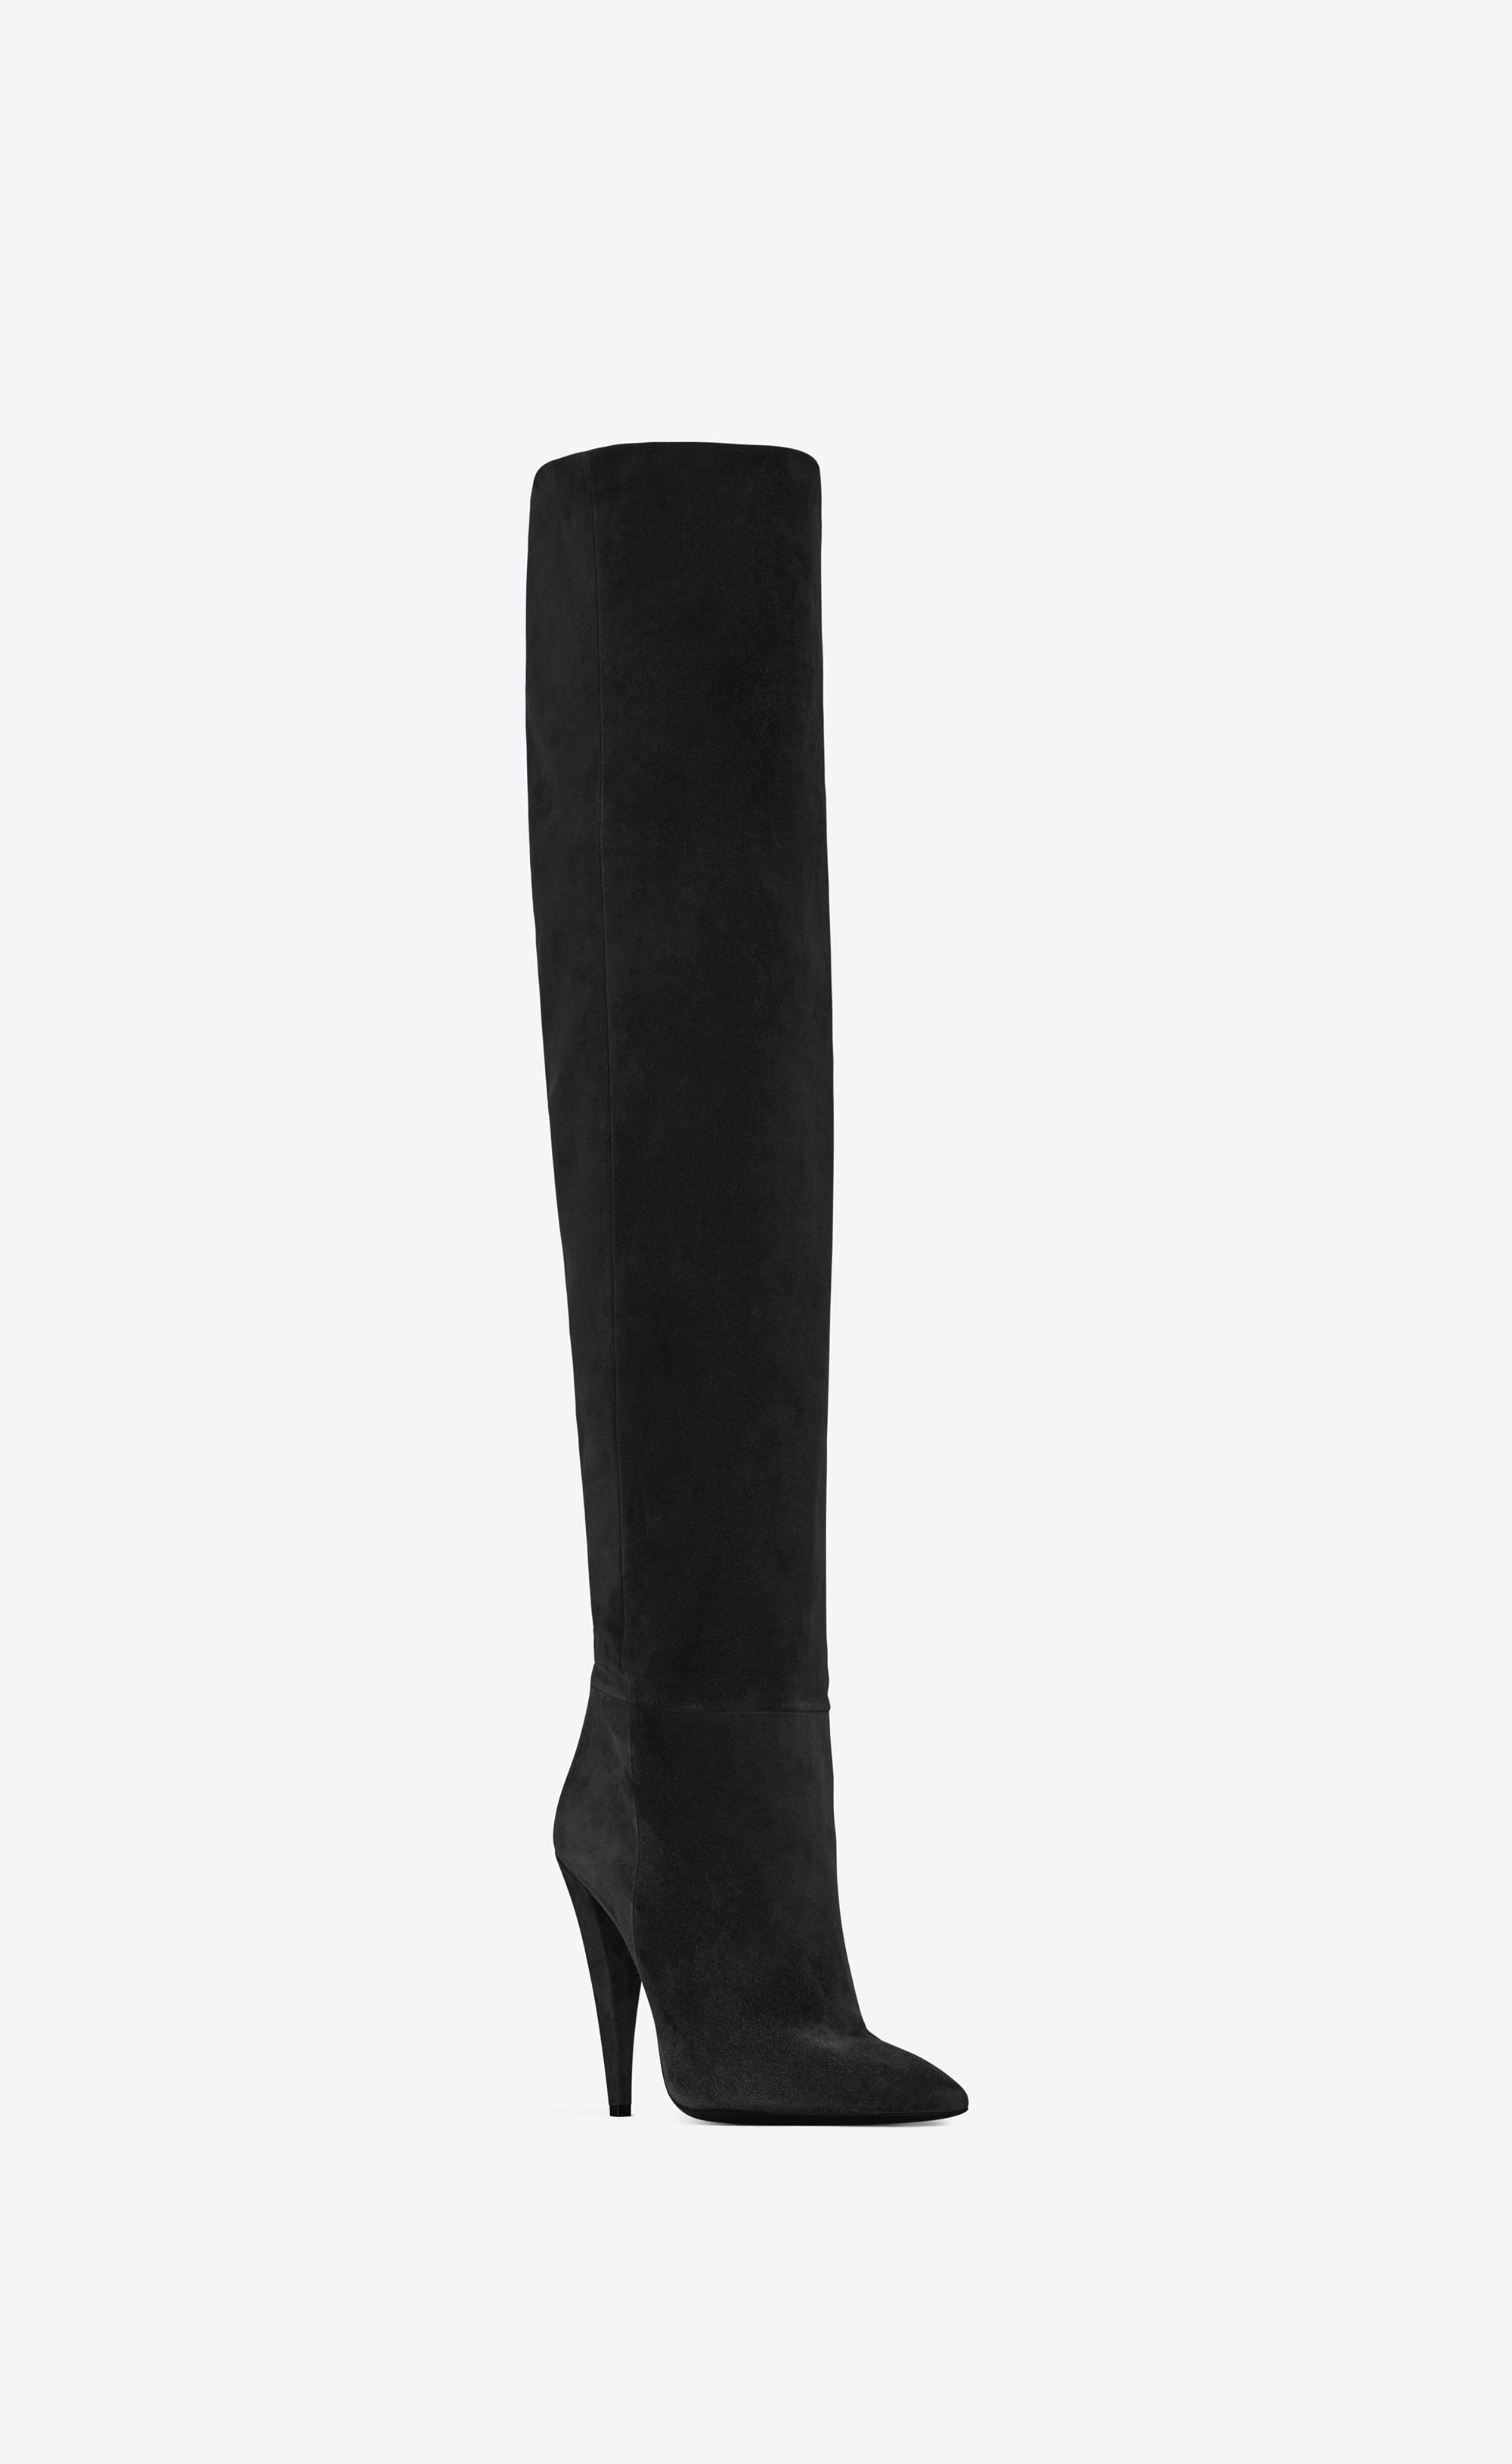 61ffe82279cf2 Saint Laurent - Era 110 boots in black suede